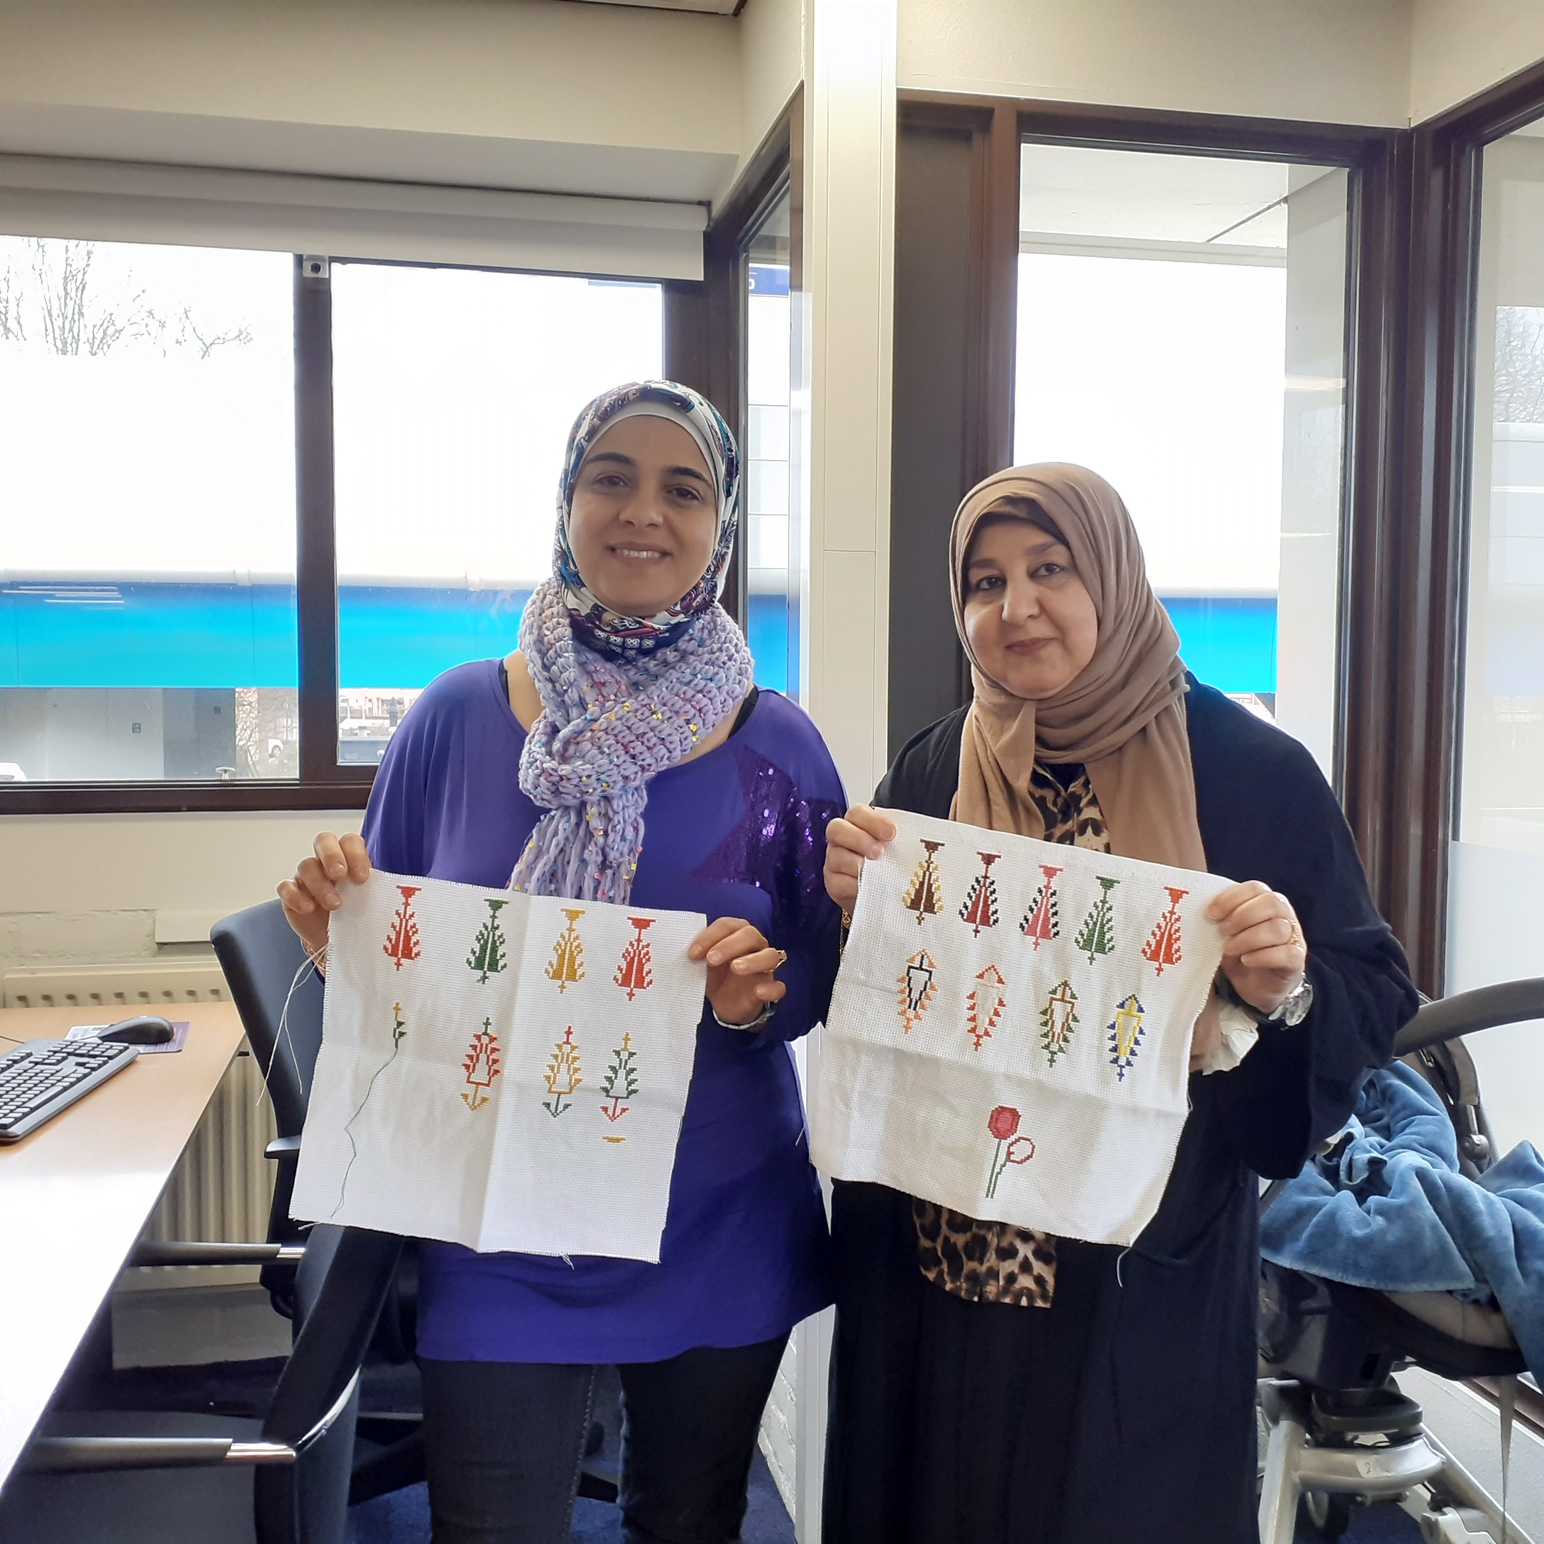 Two Middle Eastern women in Capelle a/d IJssel, proudly showing their embroidery.